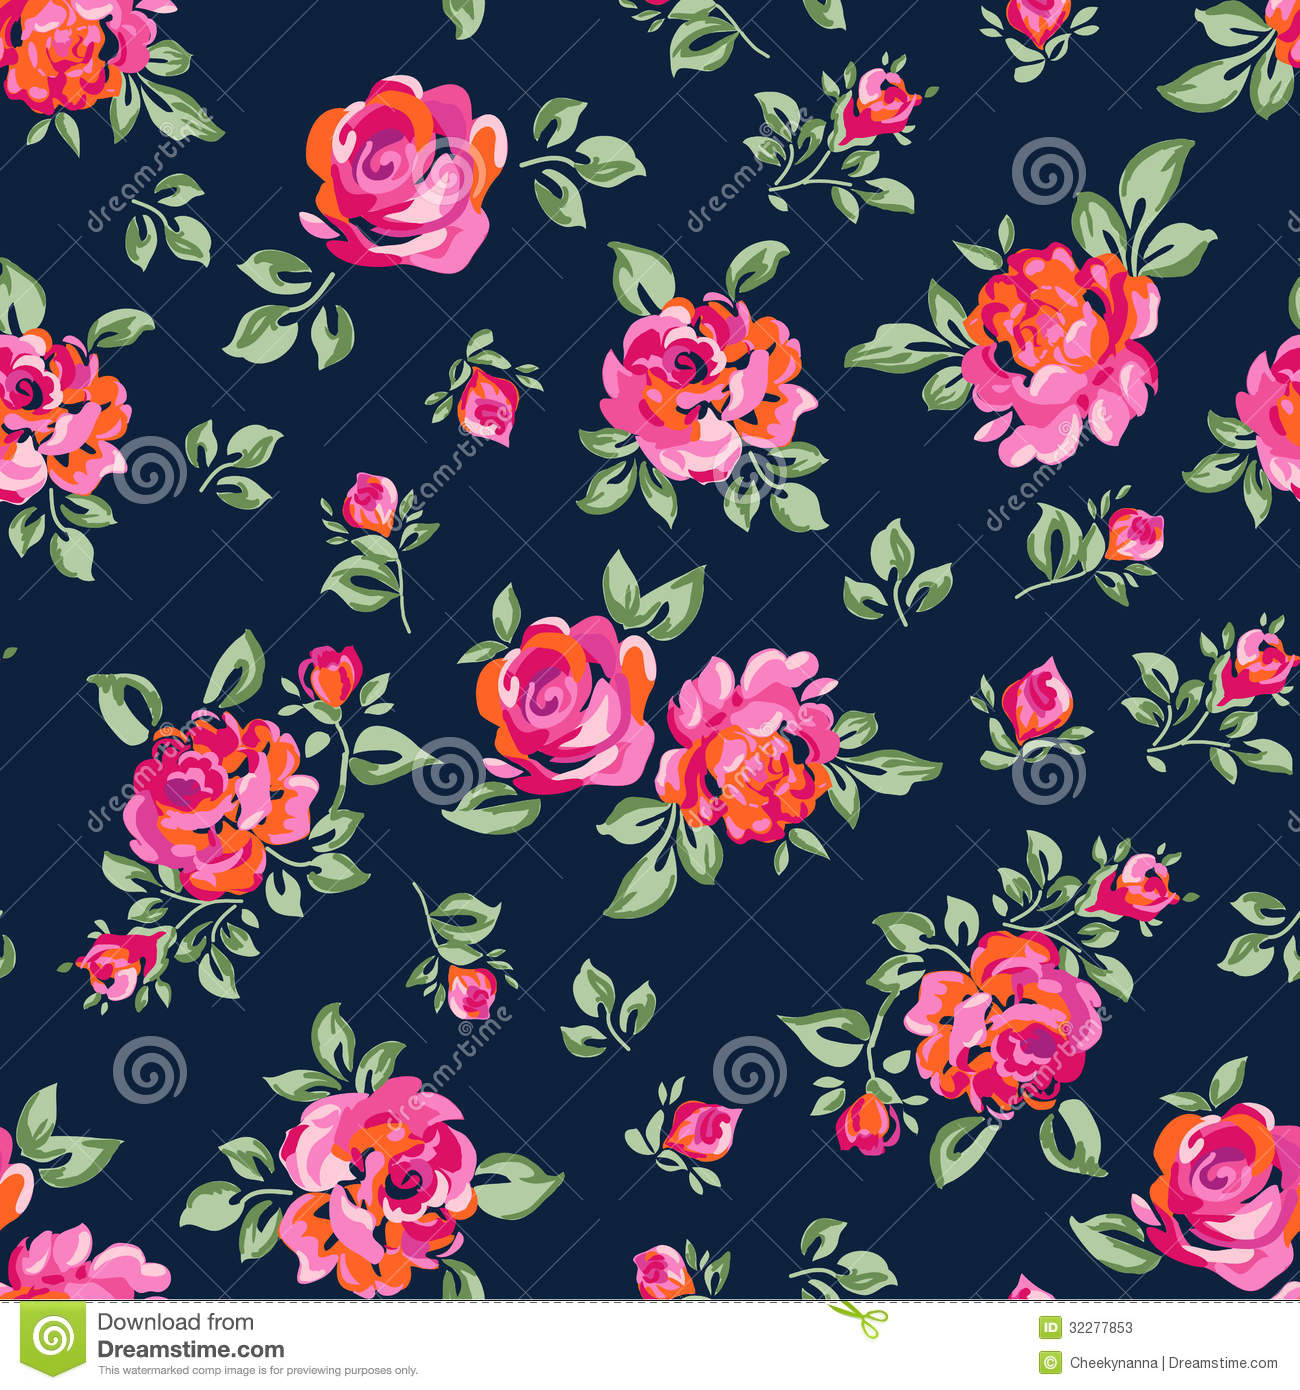 hipster flower wallpaper